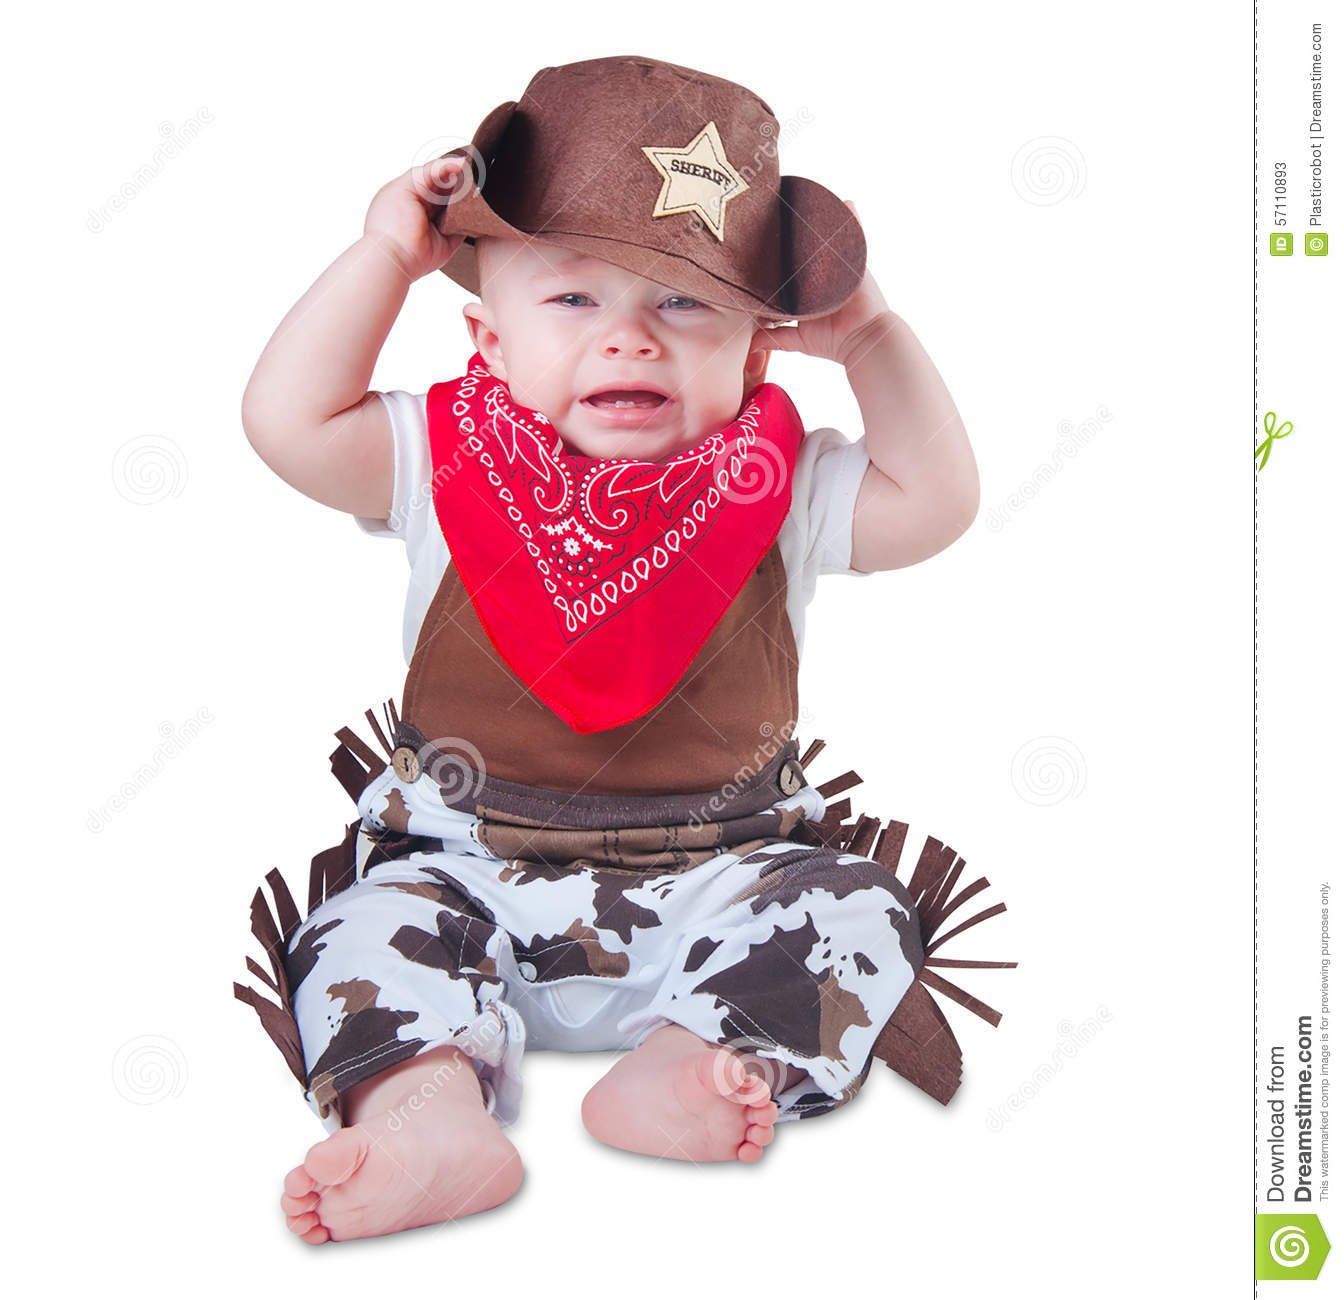 crying baby in cowboy outfit stock image image of funny